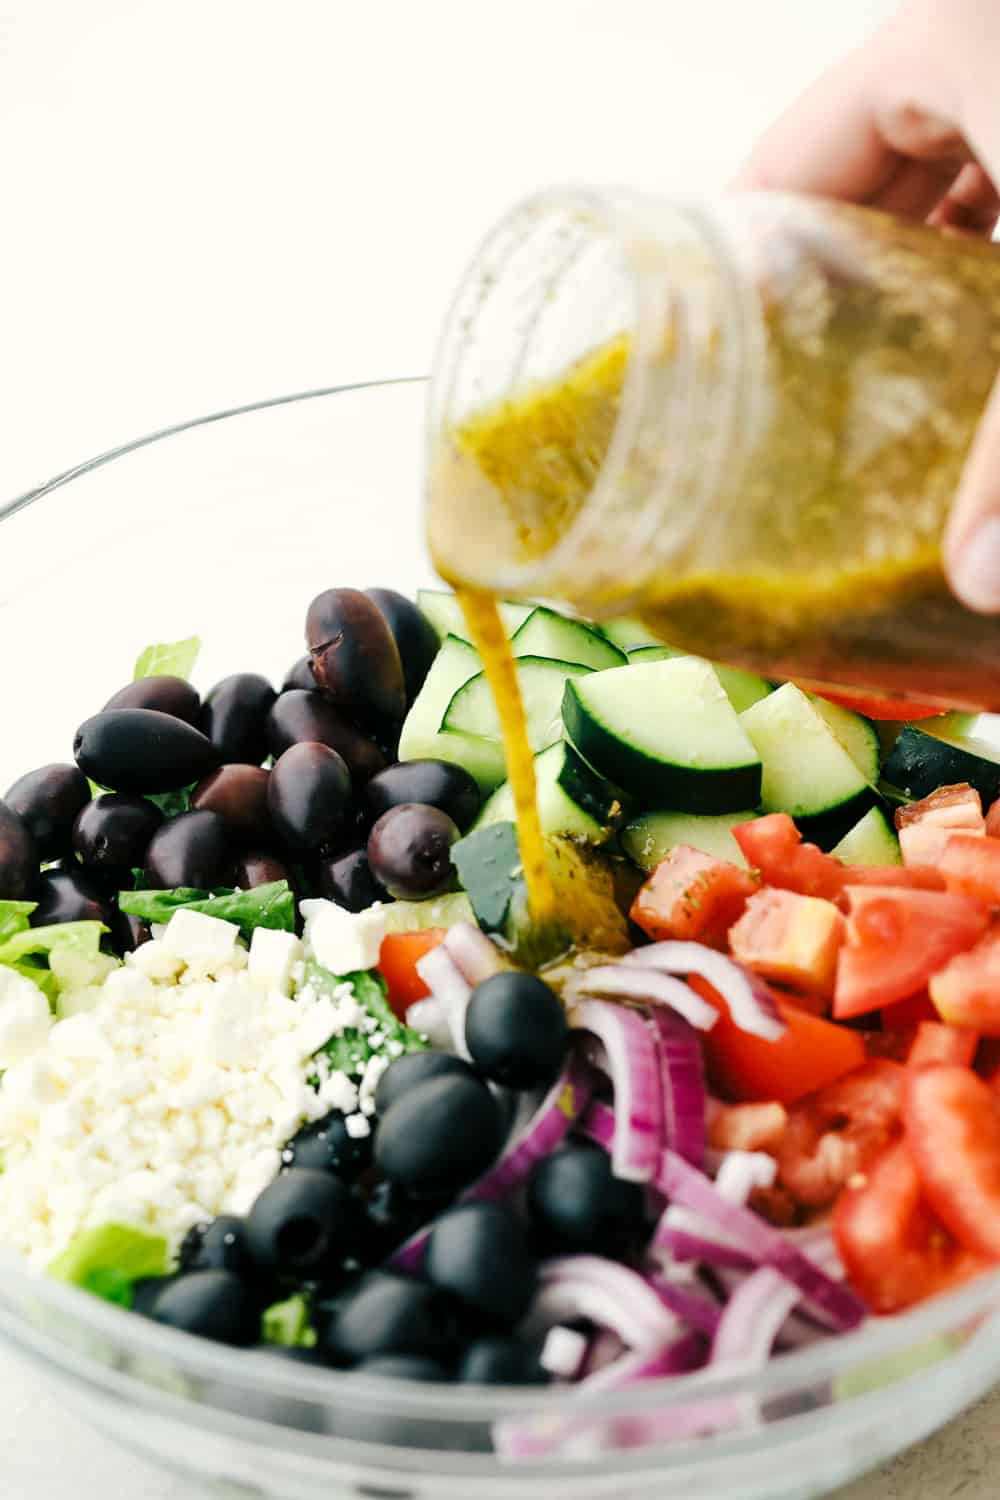 Pouring dressing on Greek salad ingredients.